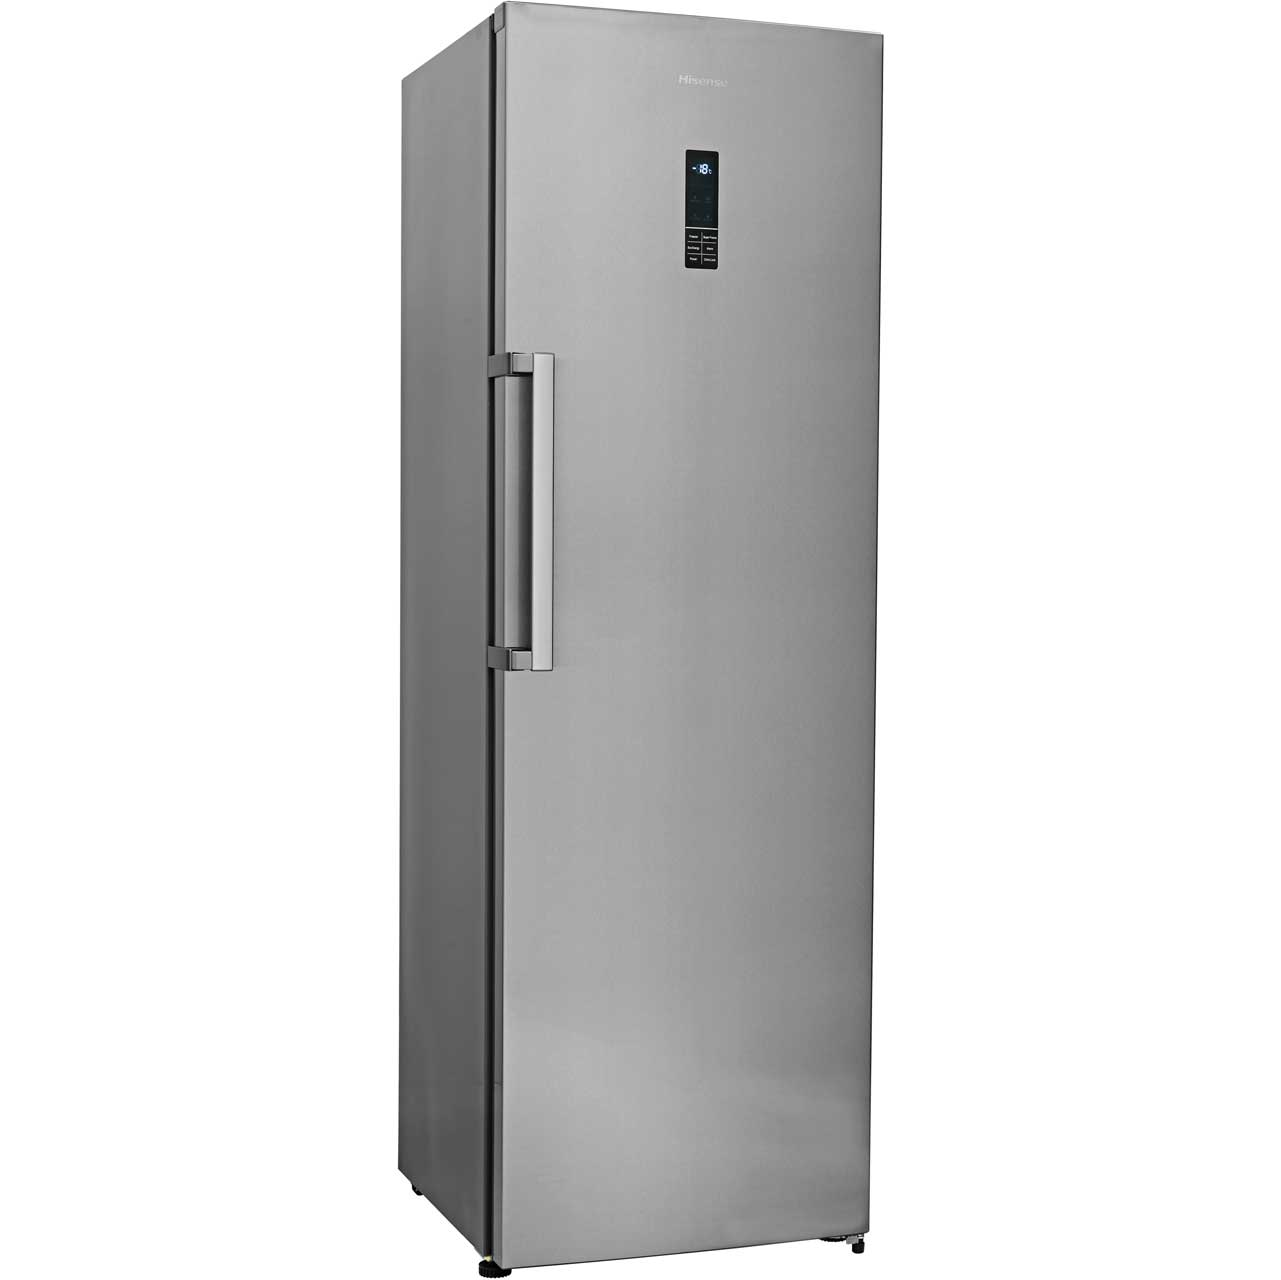 Hisense FV341N4EC1 Upright Freezer - Stainless Steel Look